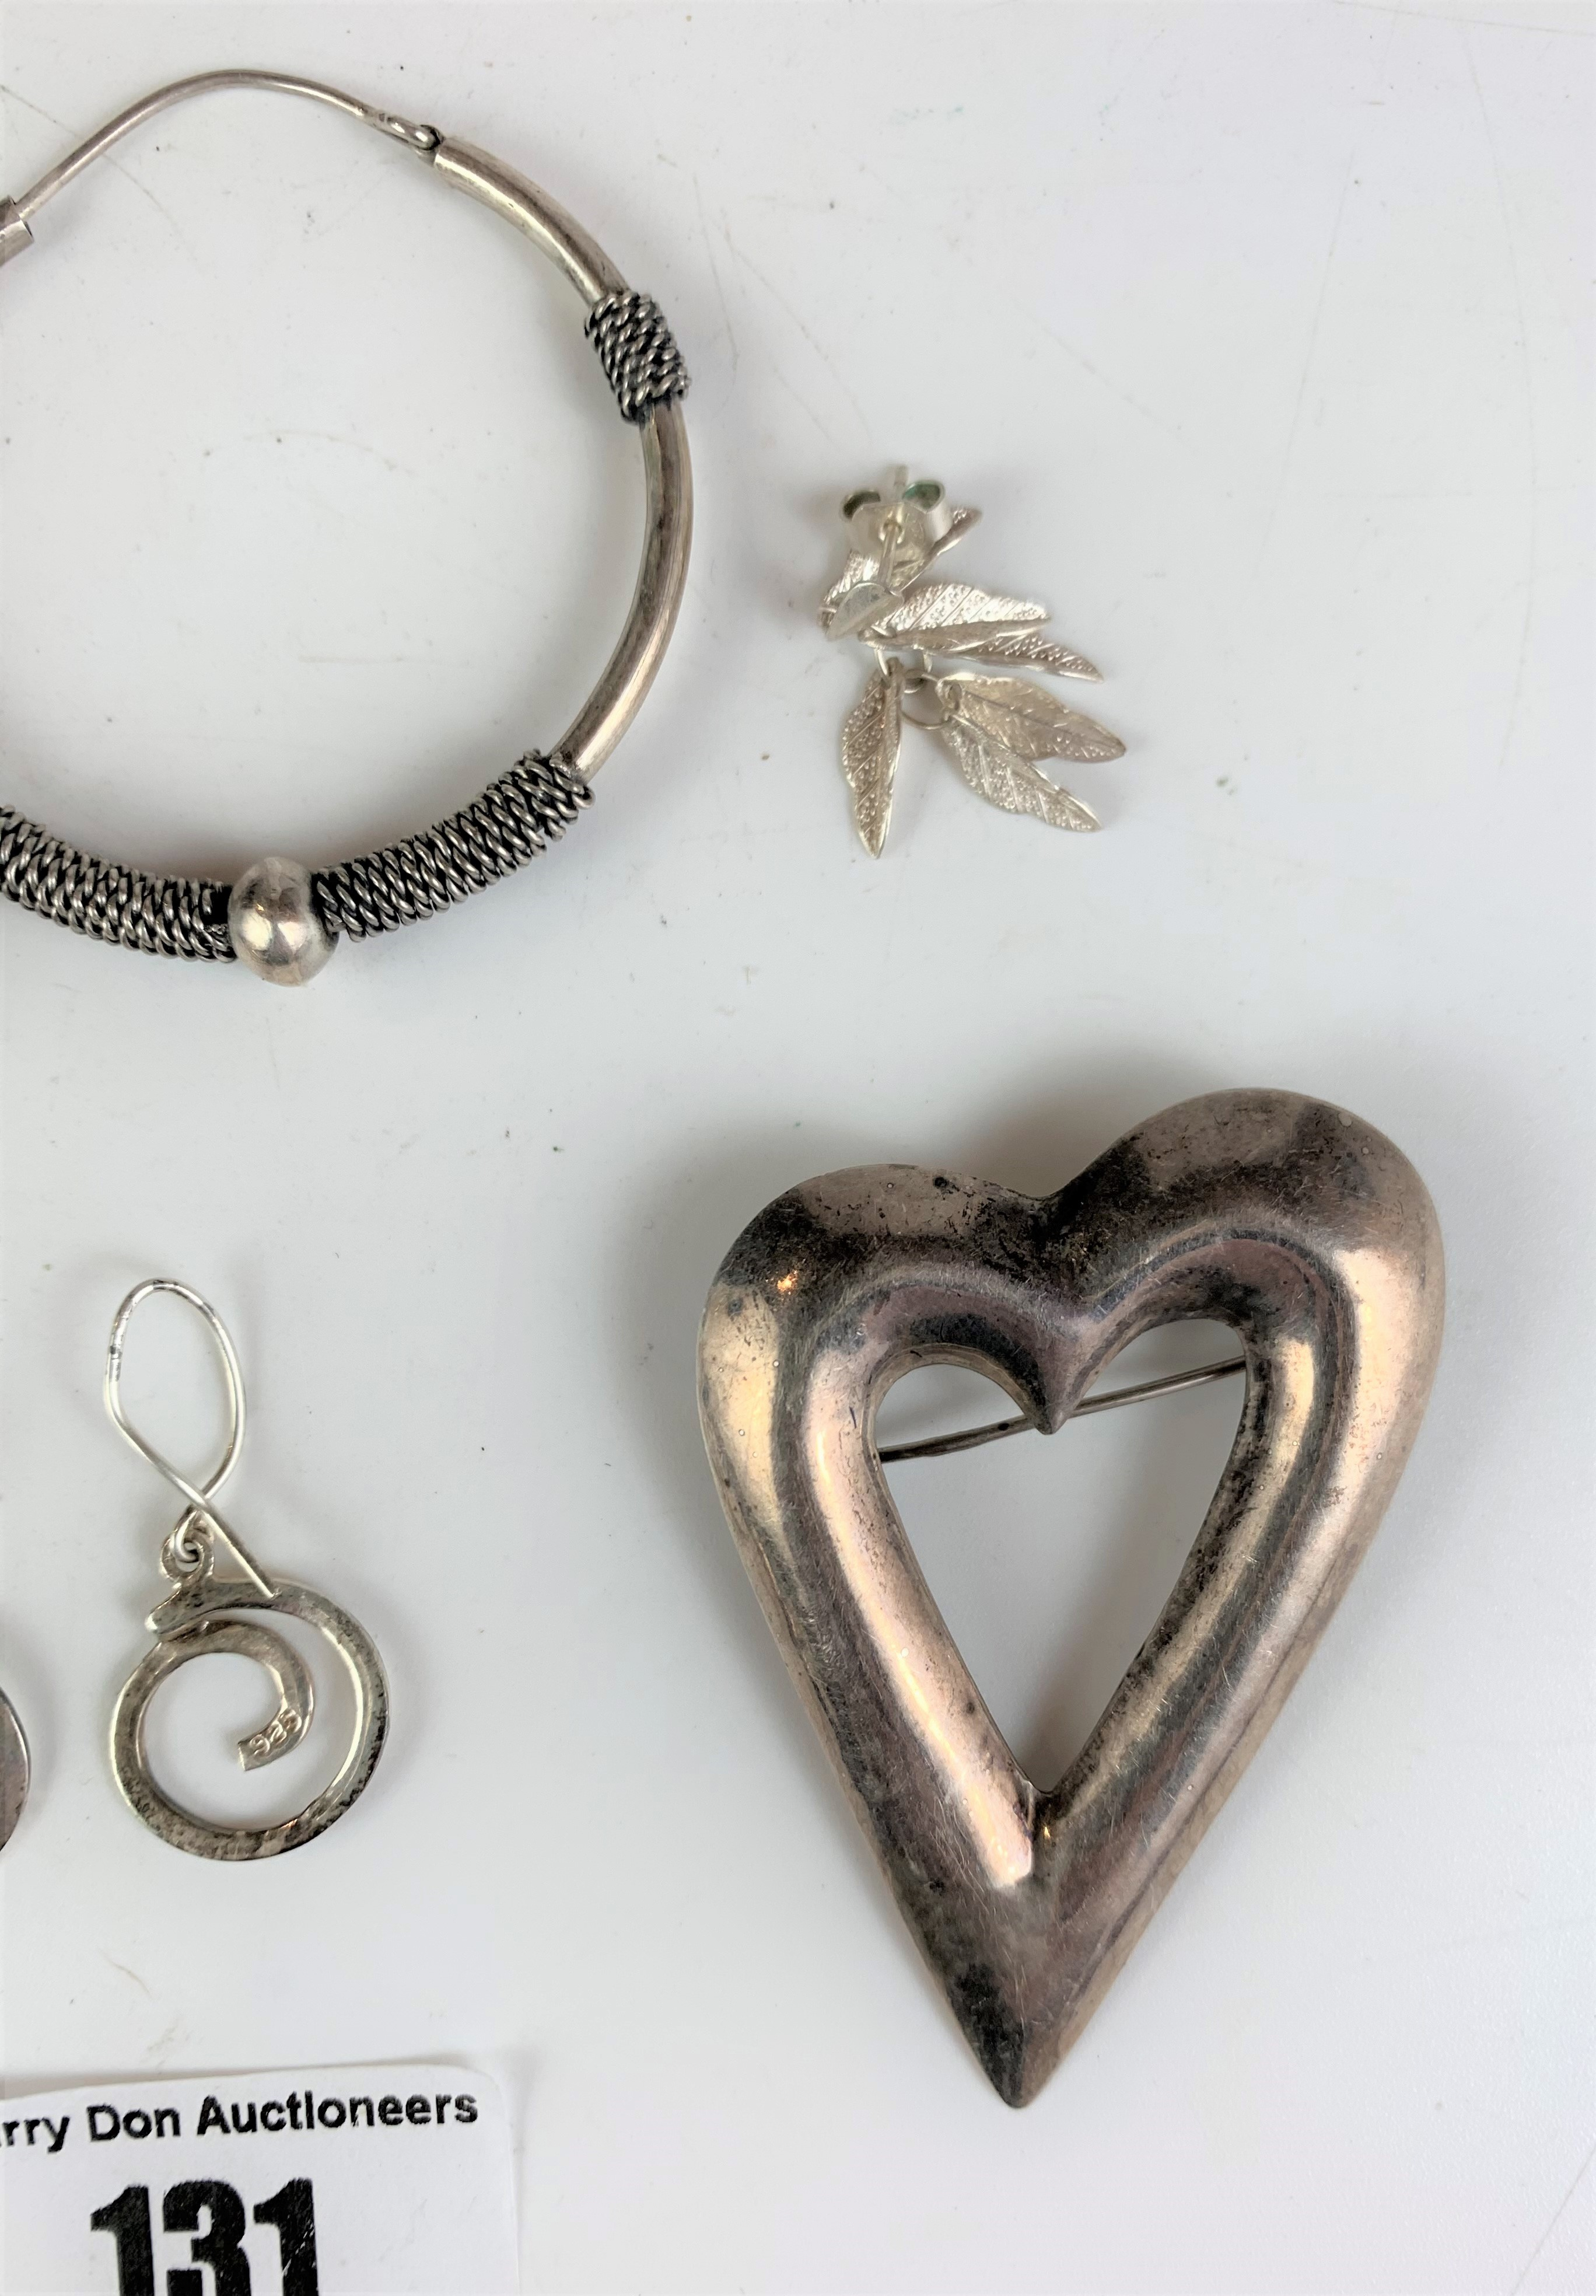 Assorted silver jewellery and coins, total w: 1.3 ozt - Image 5 of 5